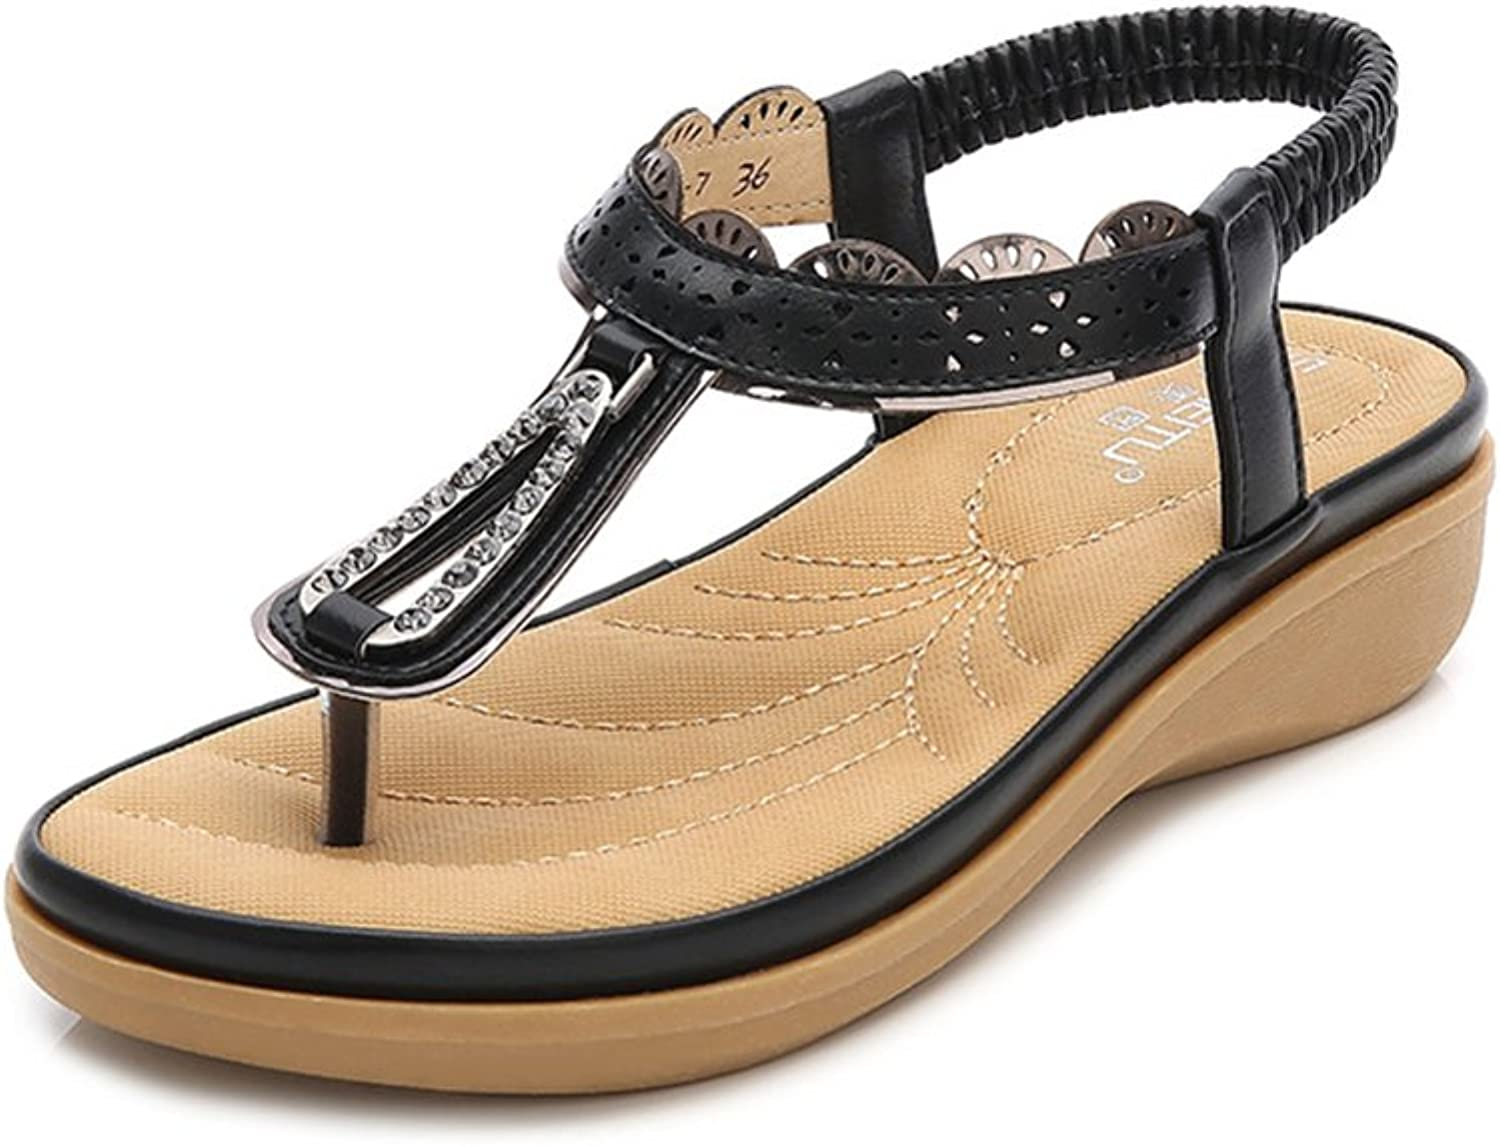 Tuoup Women's Flat Beaded Leather Summer Sandles Thong Sandals